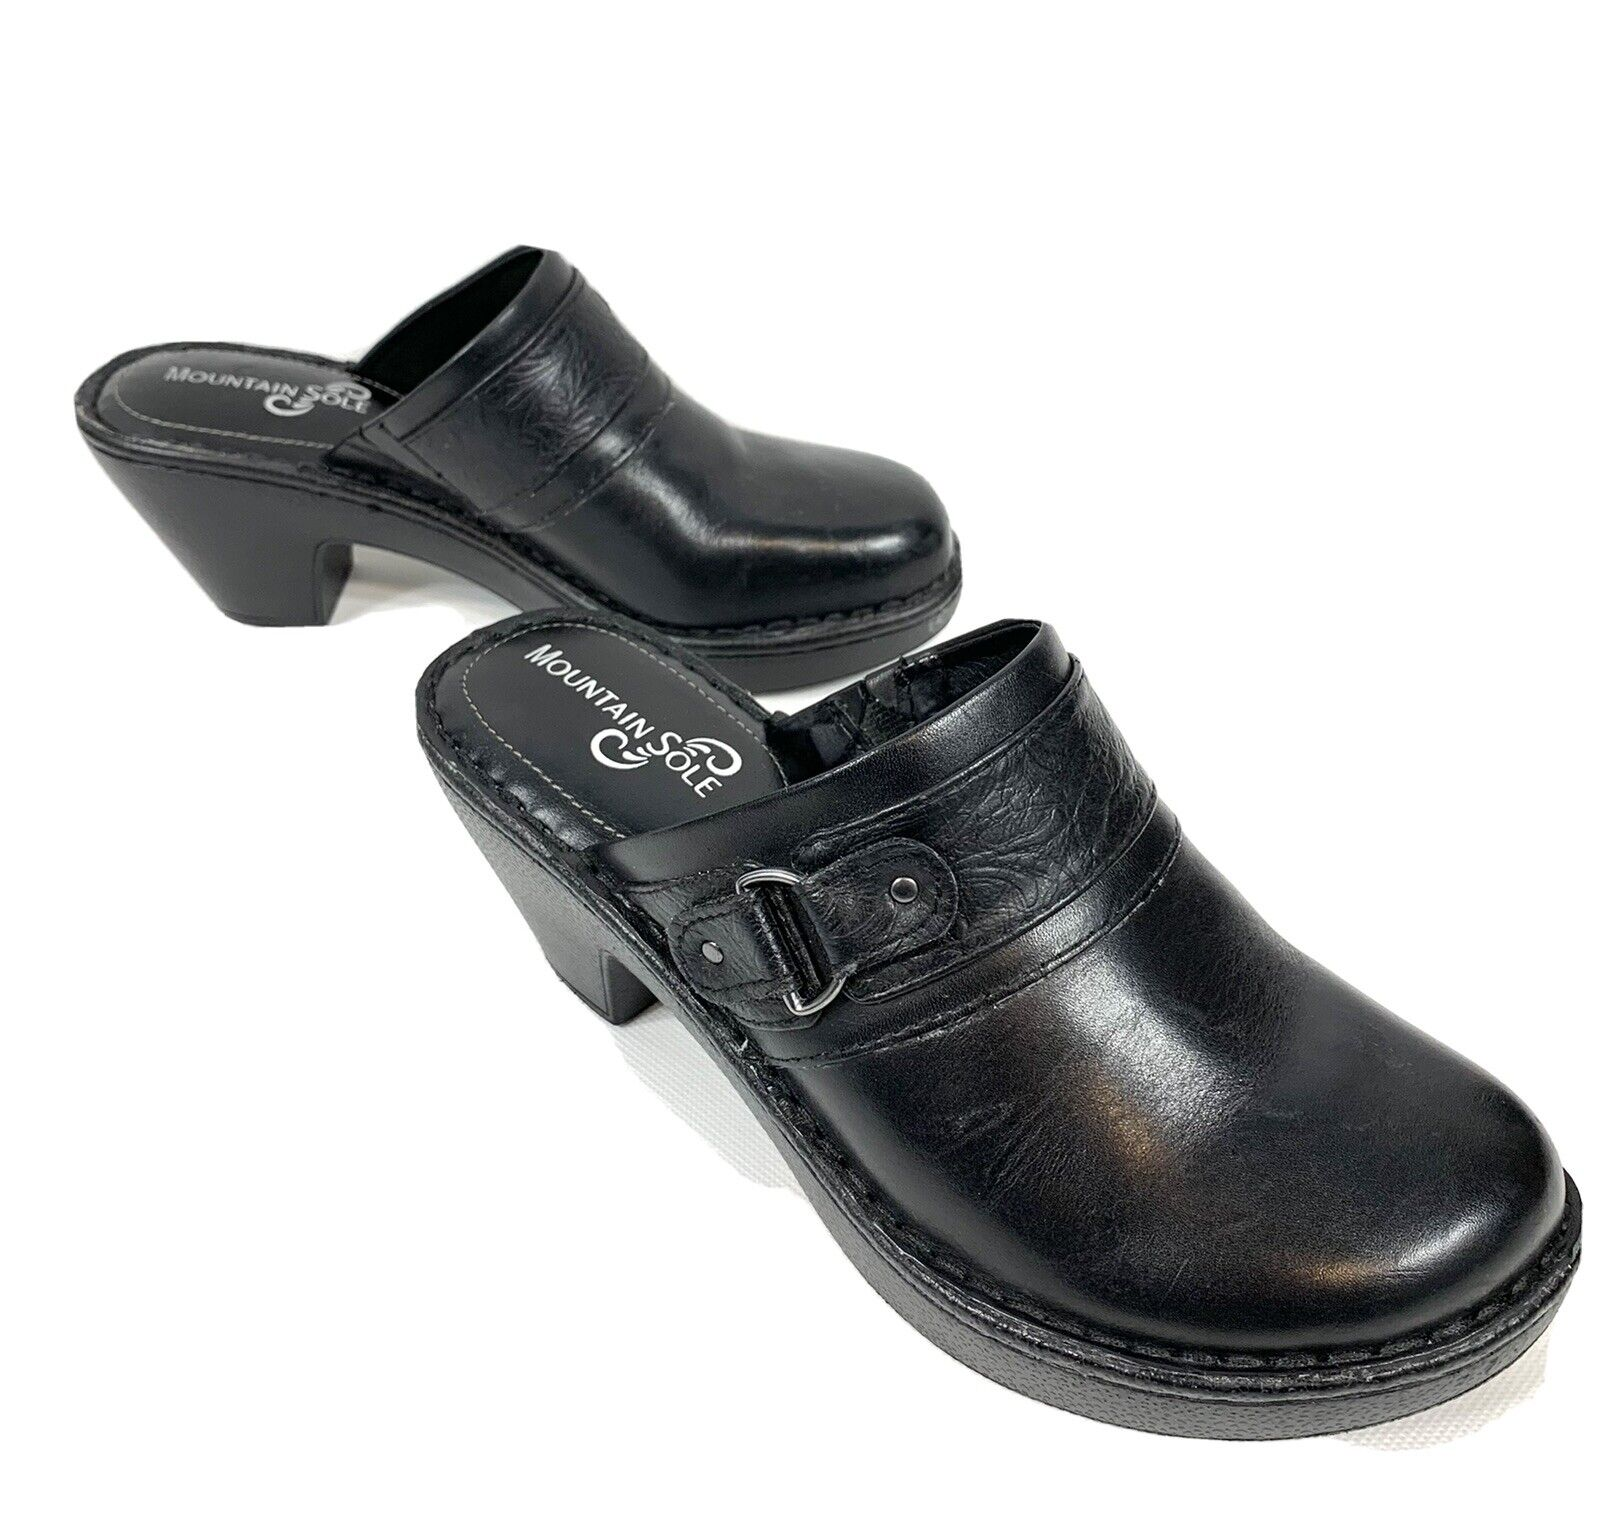 Mountain Sole Black Leather Clogs Mules Heels - Size 8.5 M